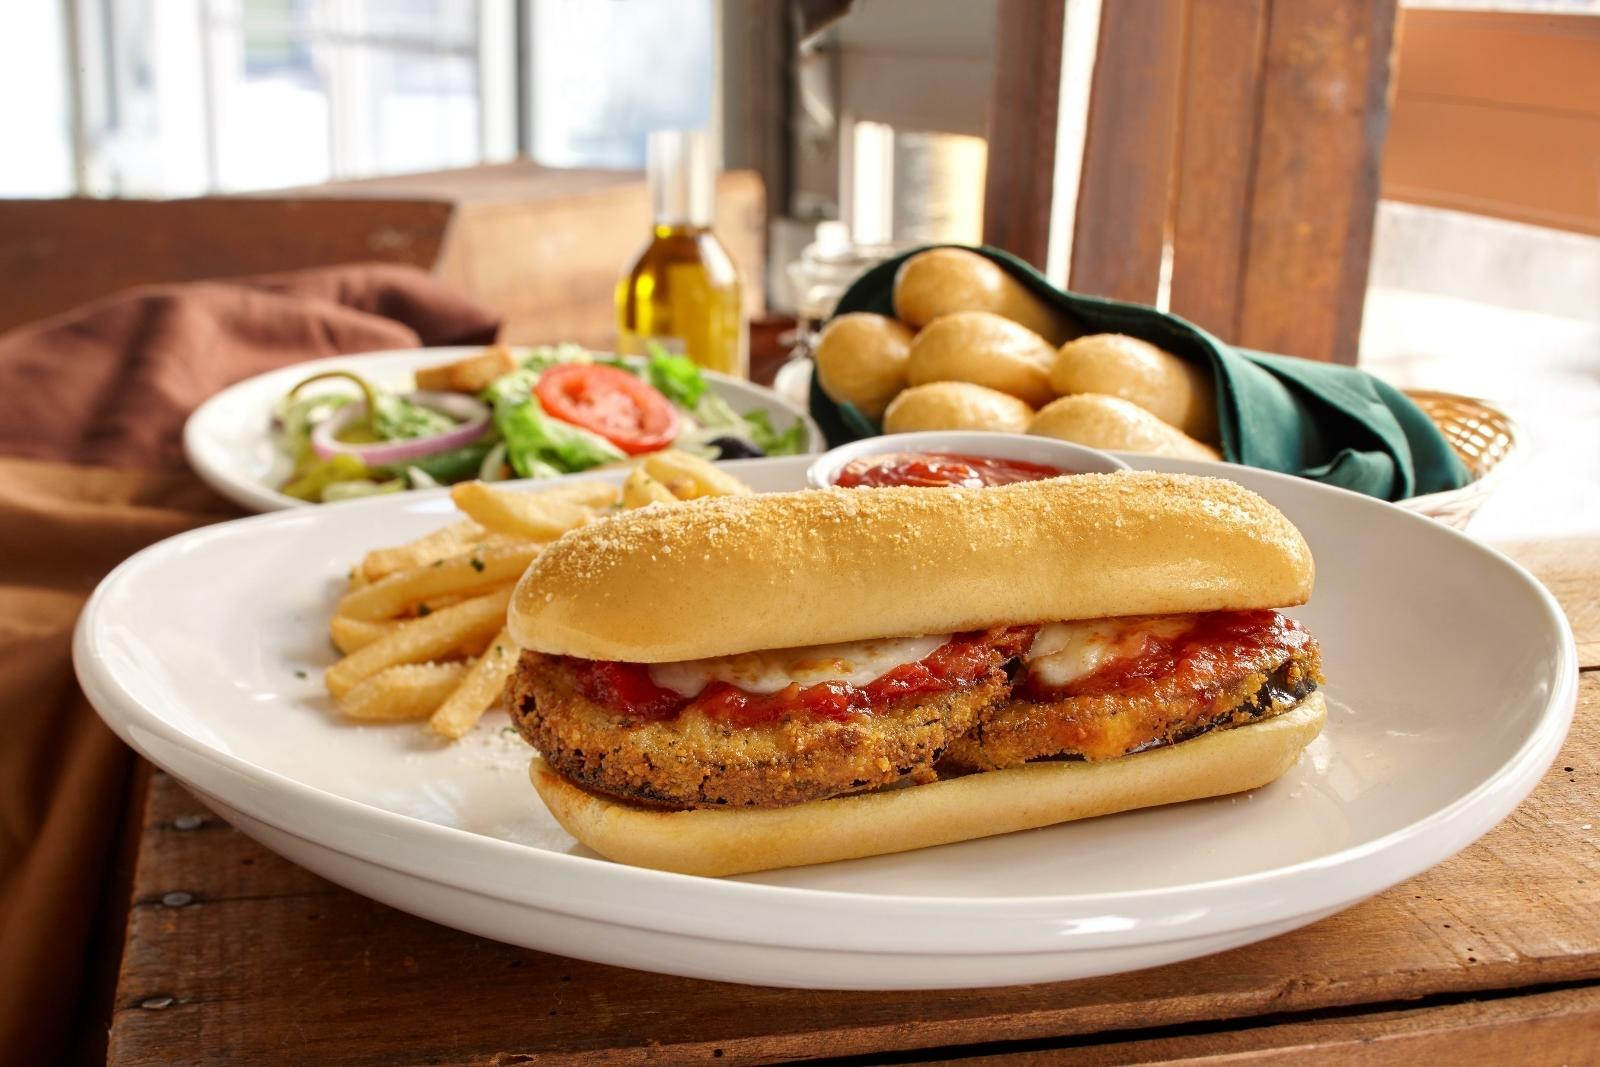 Olive Garden Debuts Spaghetti Pie, Adds New Breadstick Sandwiches to Its Lineup